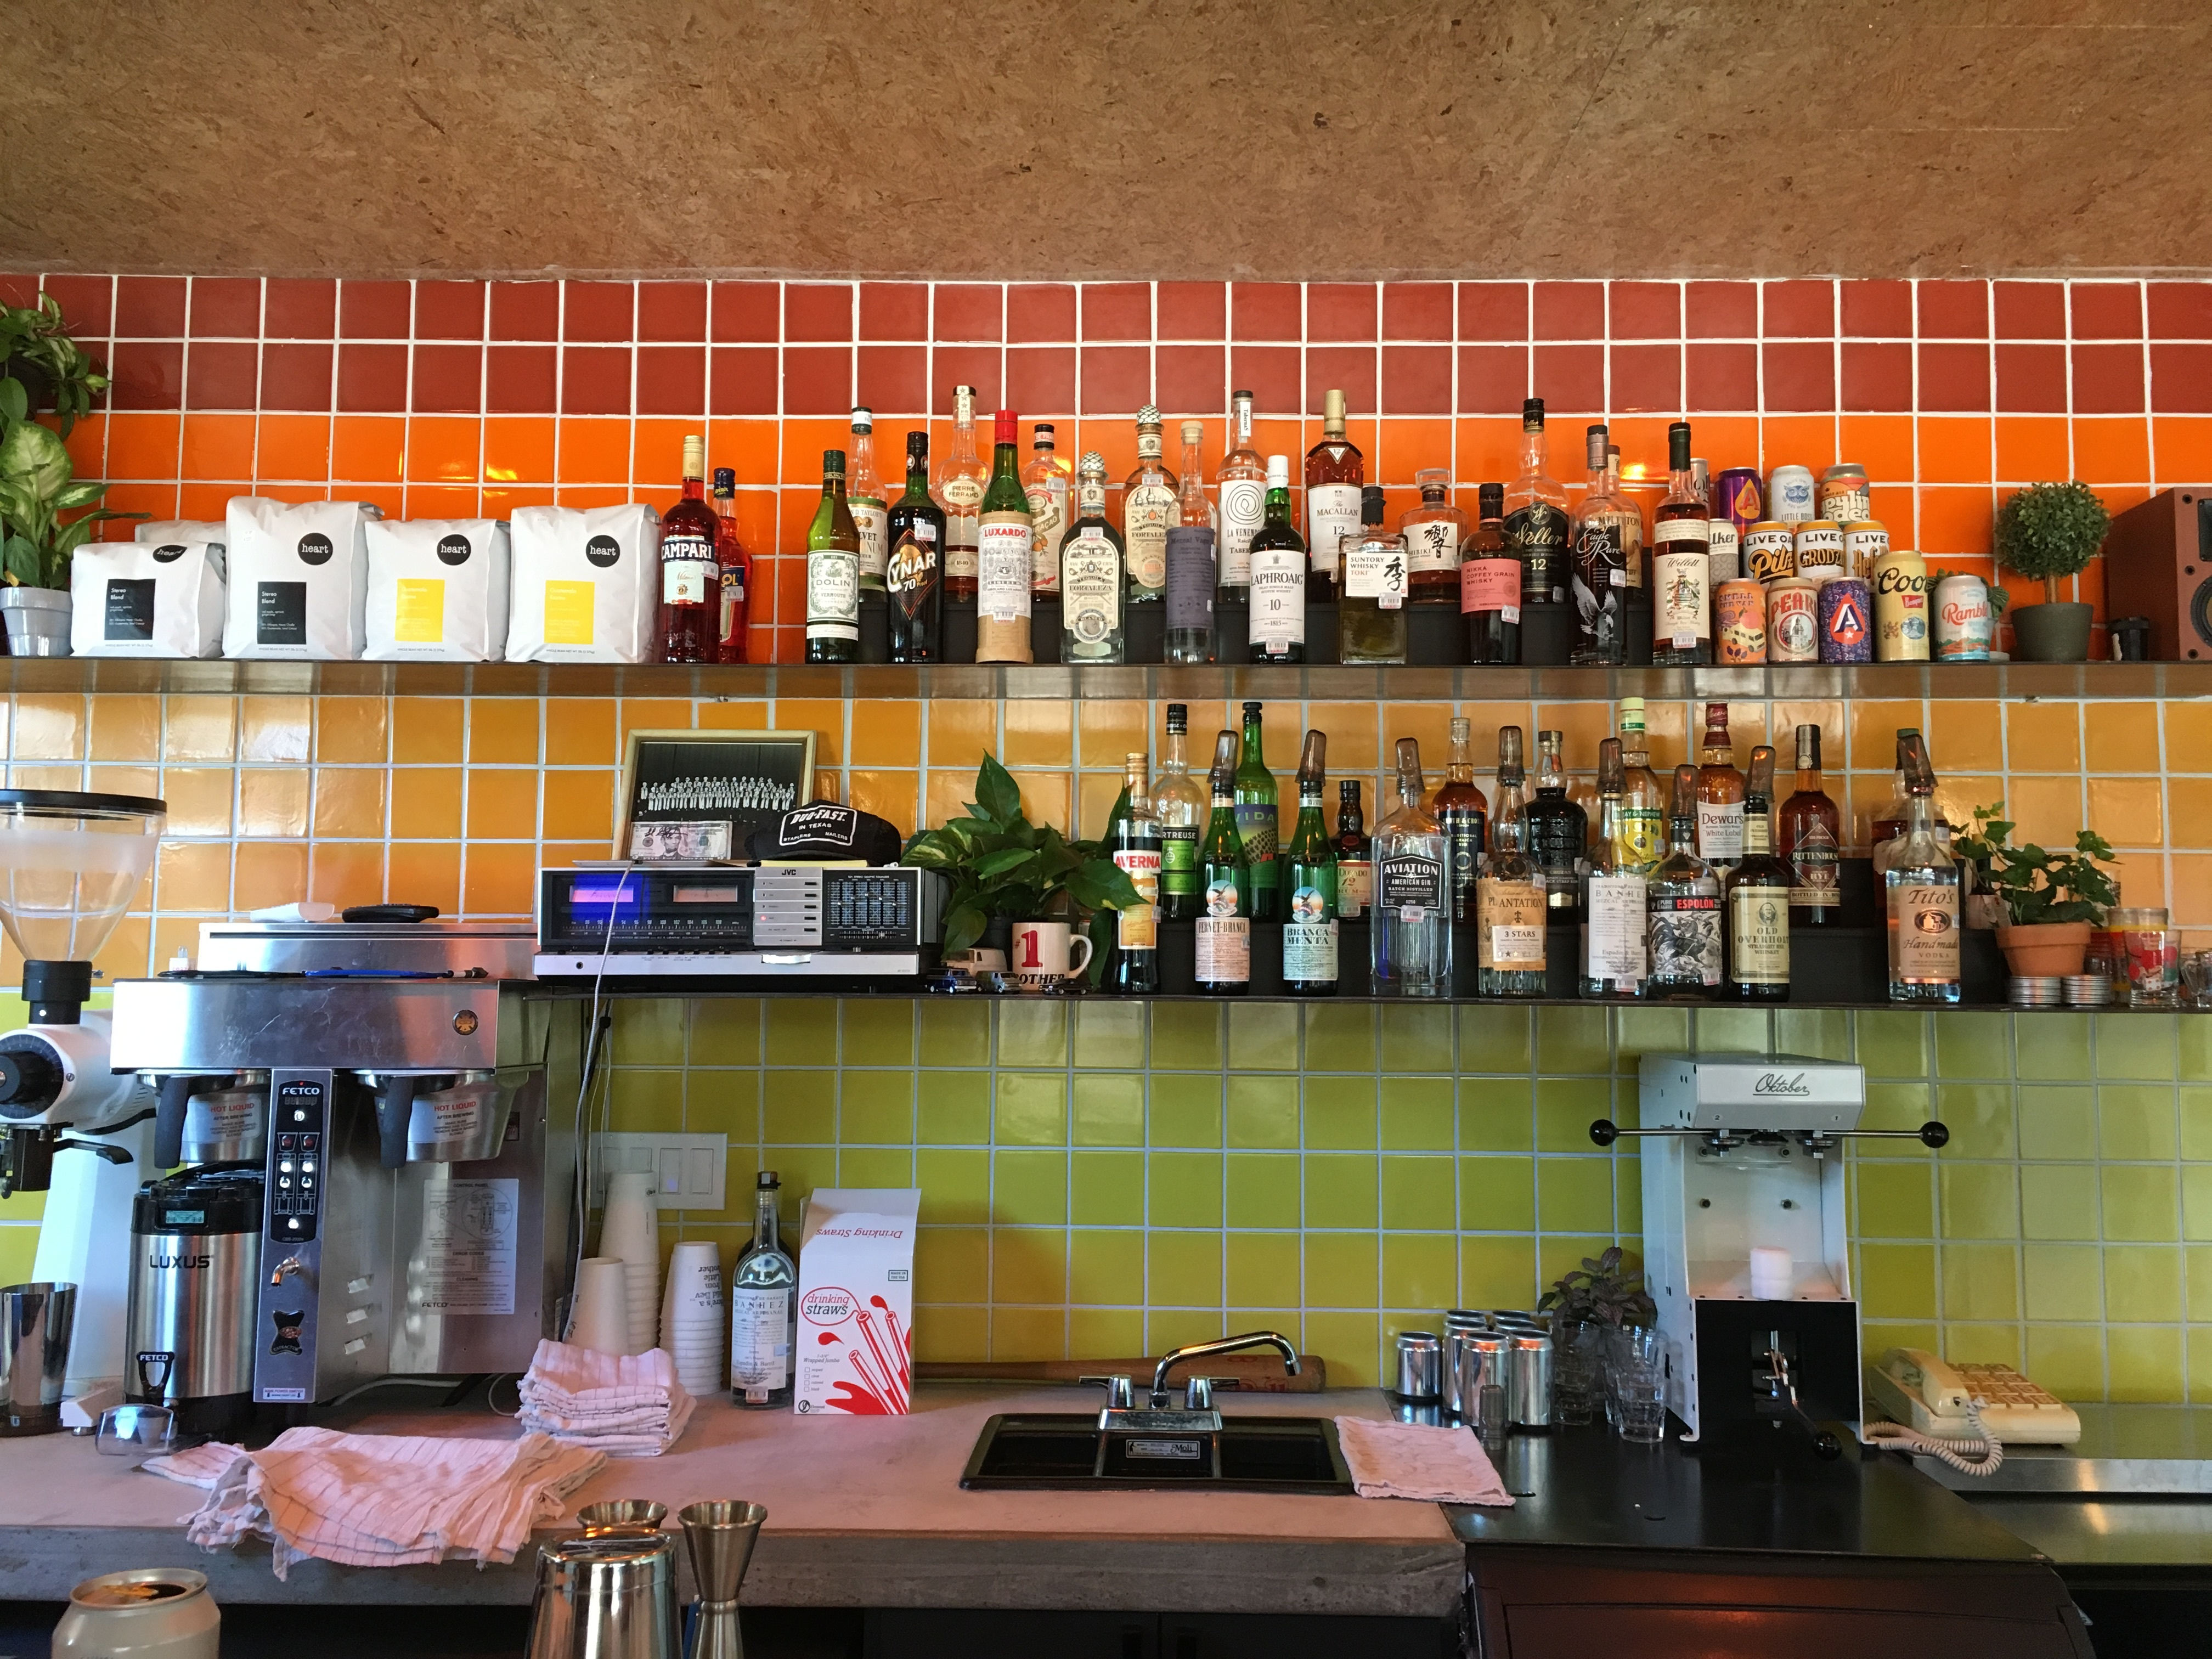 Little Brother's back bar